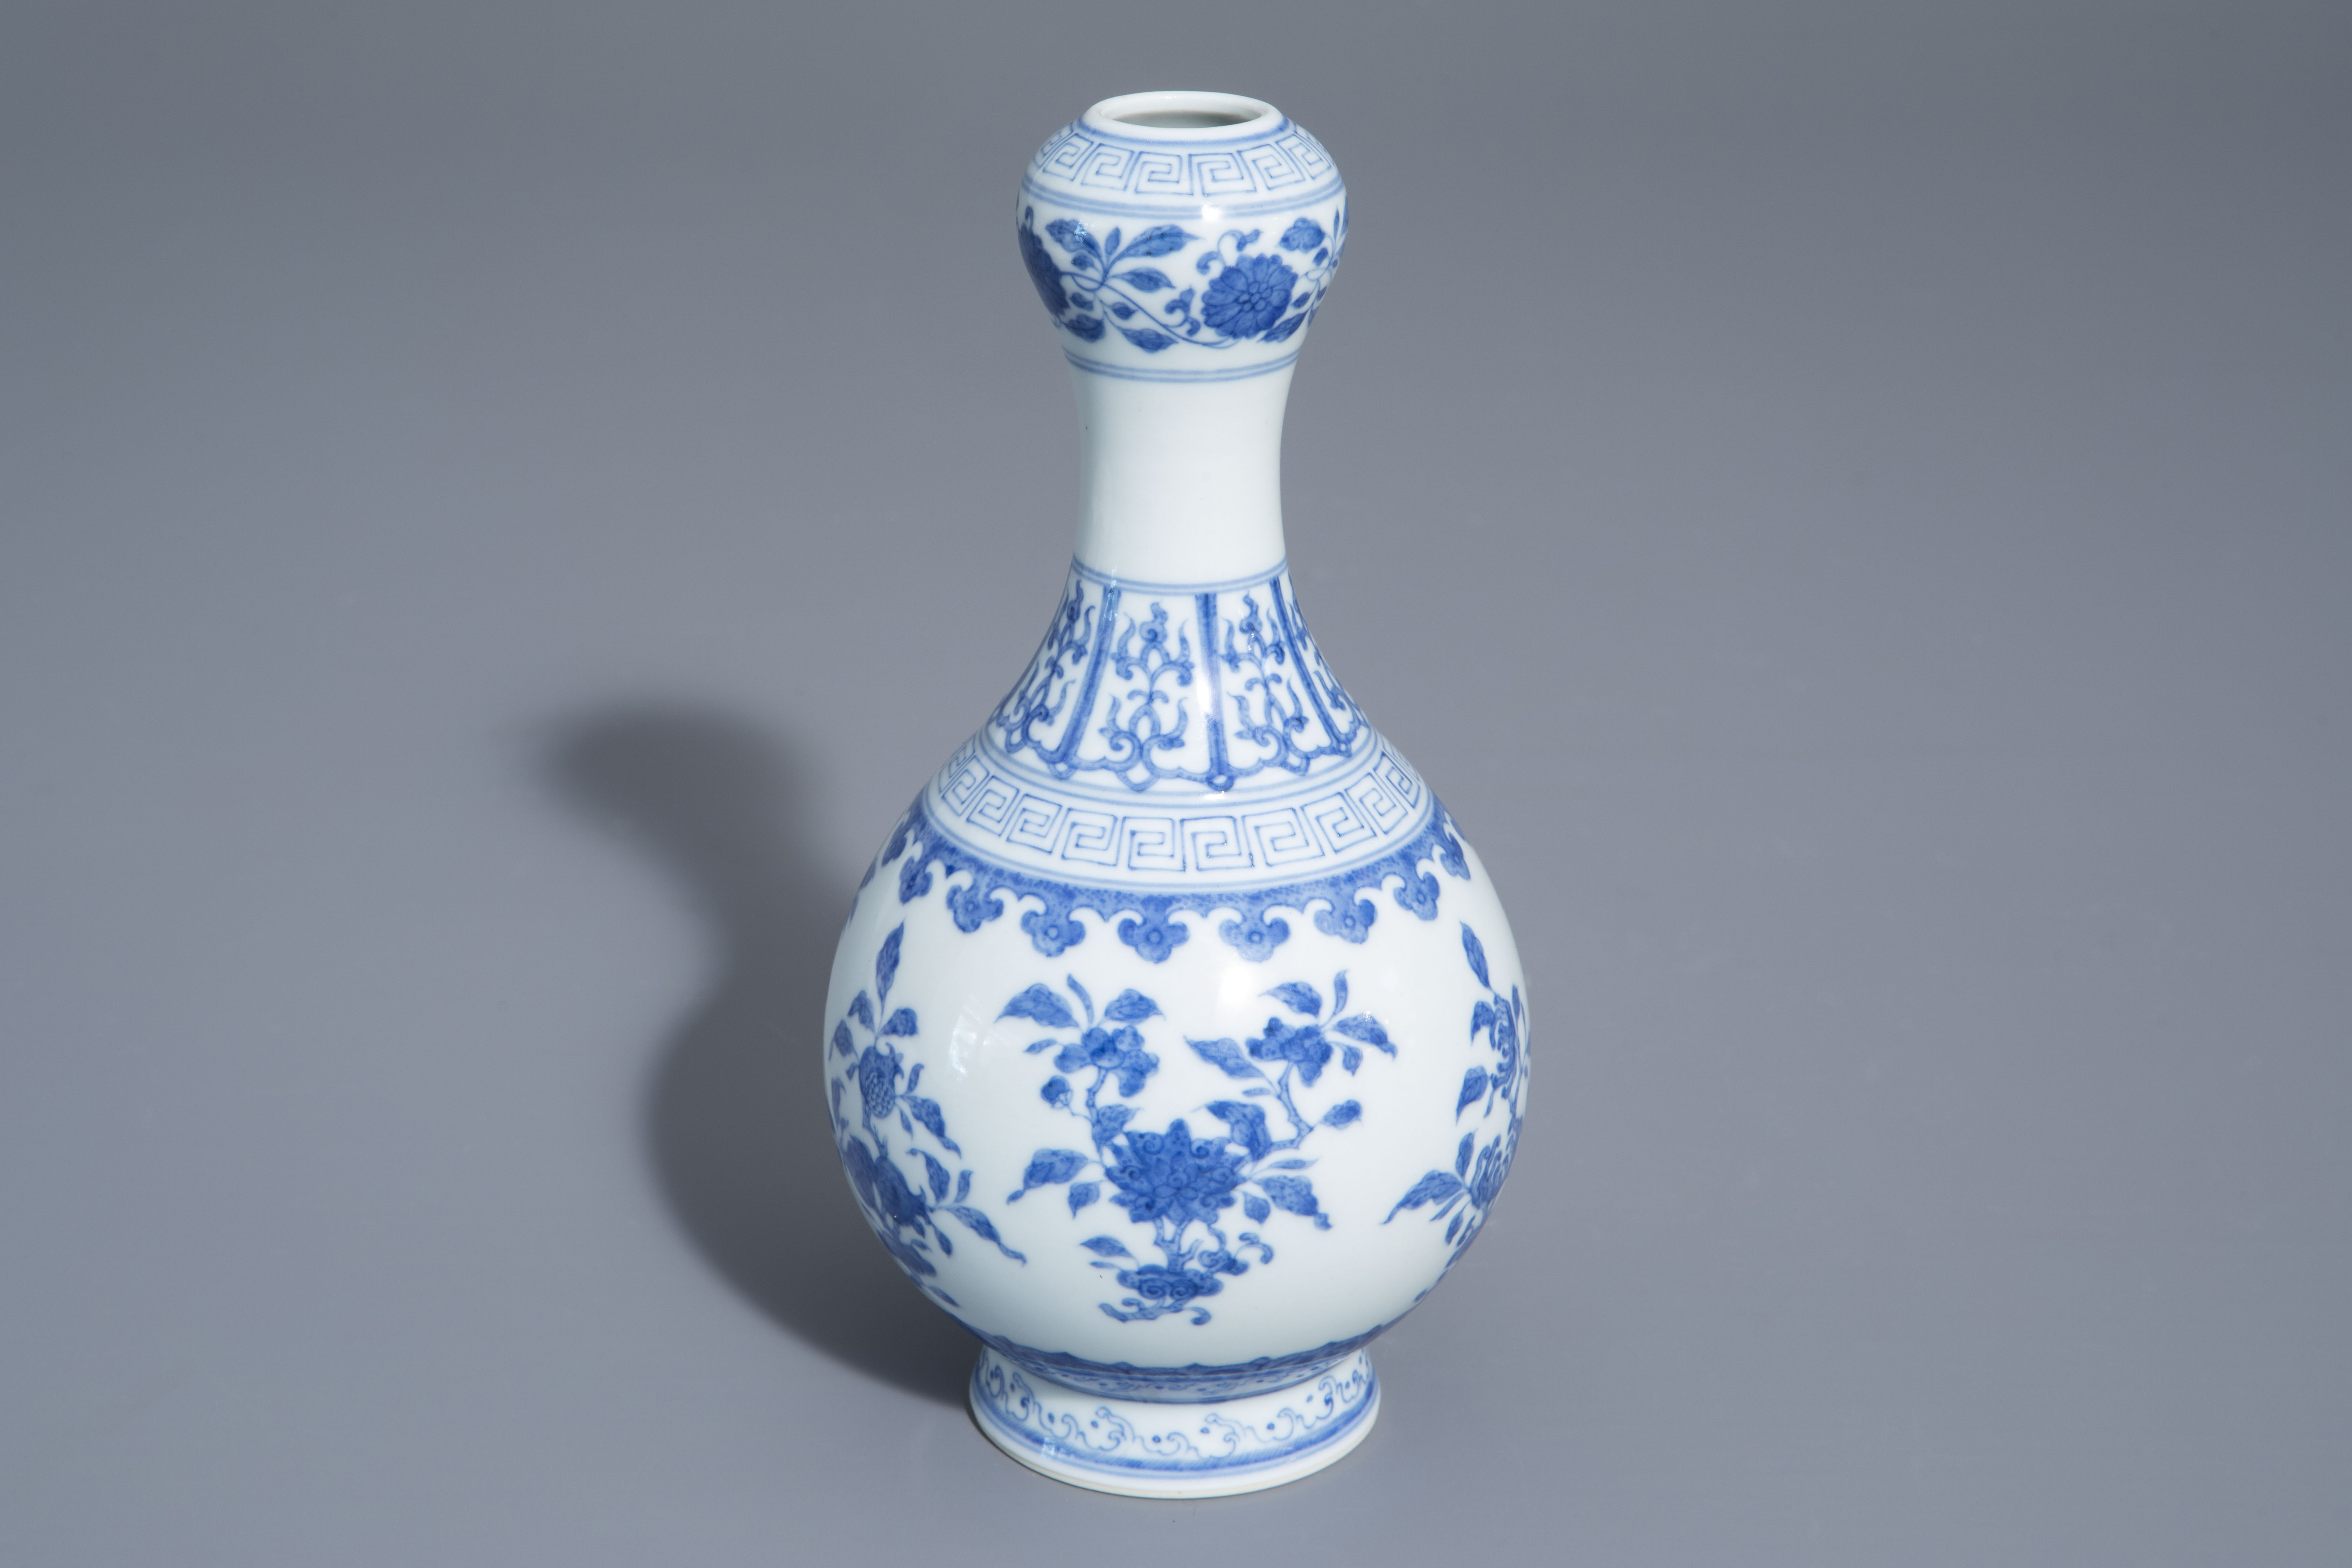 A Chinese blue and white garlic-head mouth vase with floral design, Qianlong mark, 20th C.